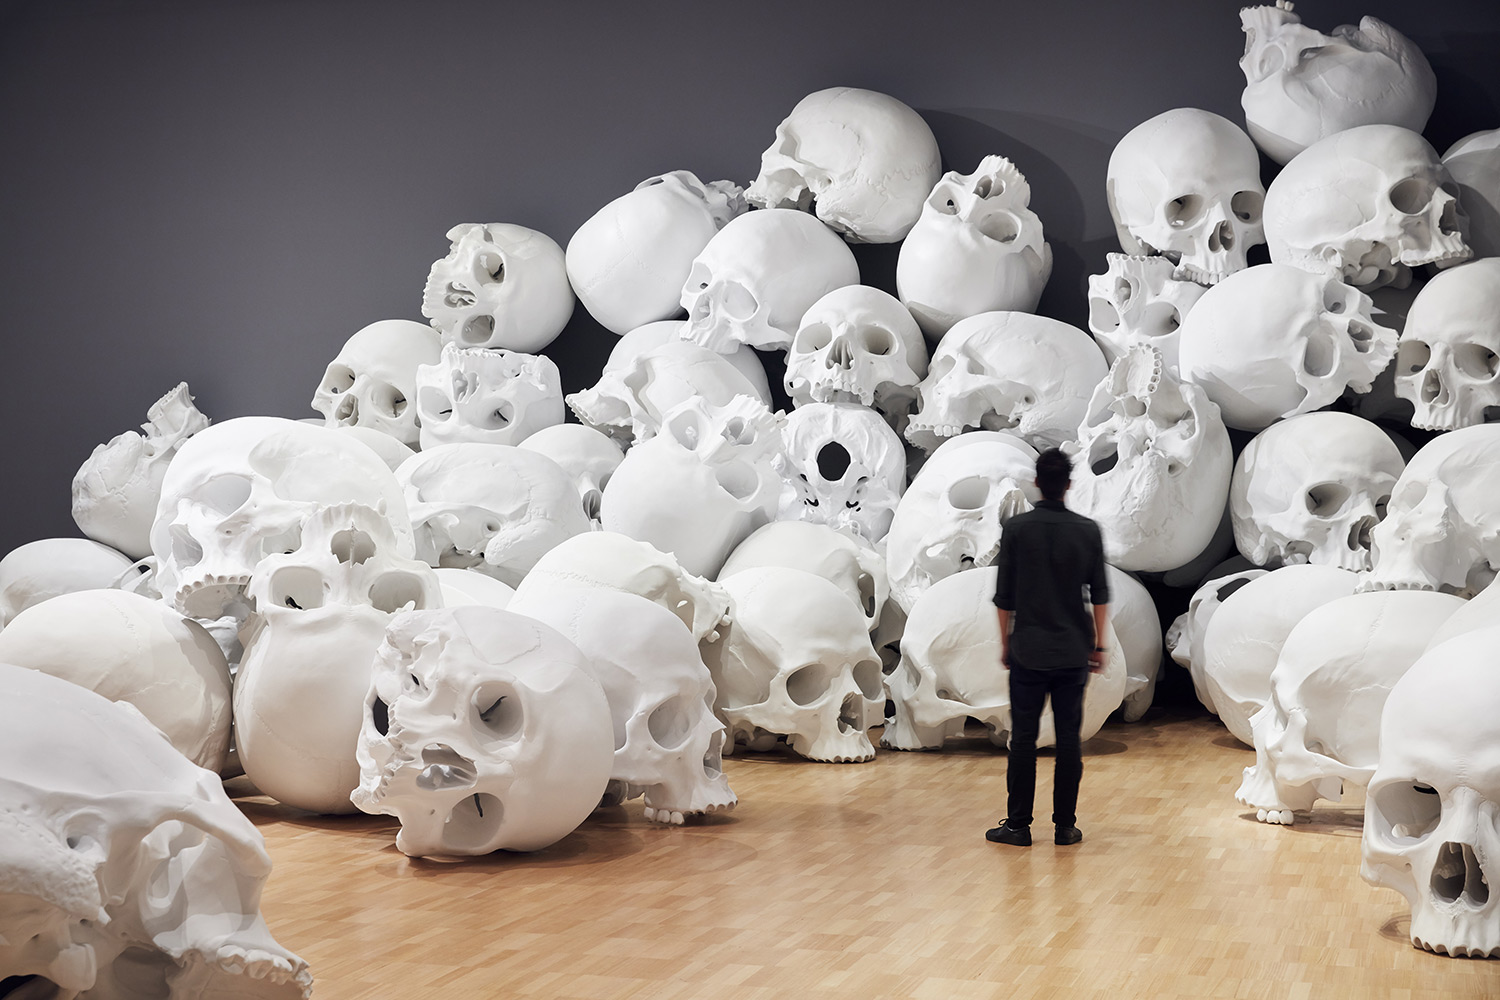 100 Fiberglass and Resin Skulls Fill a Room at the National Gallery of Victoria in Melbourne (10 pics)